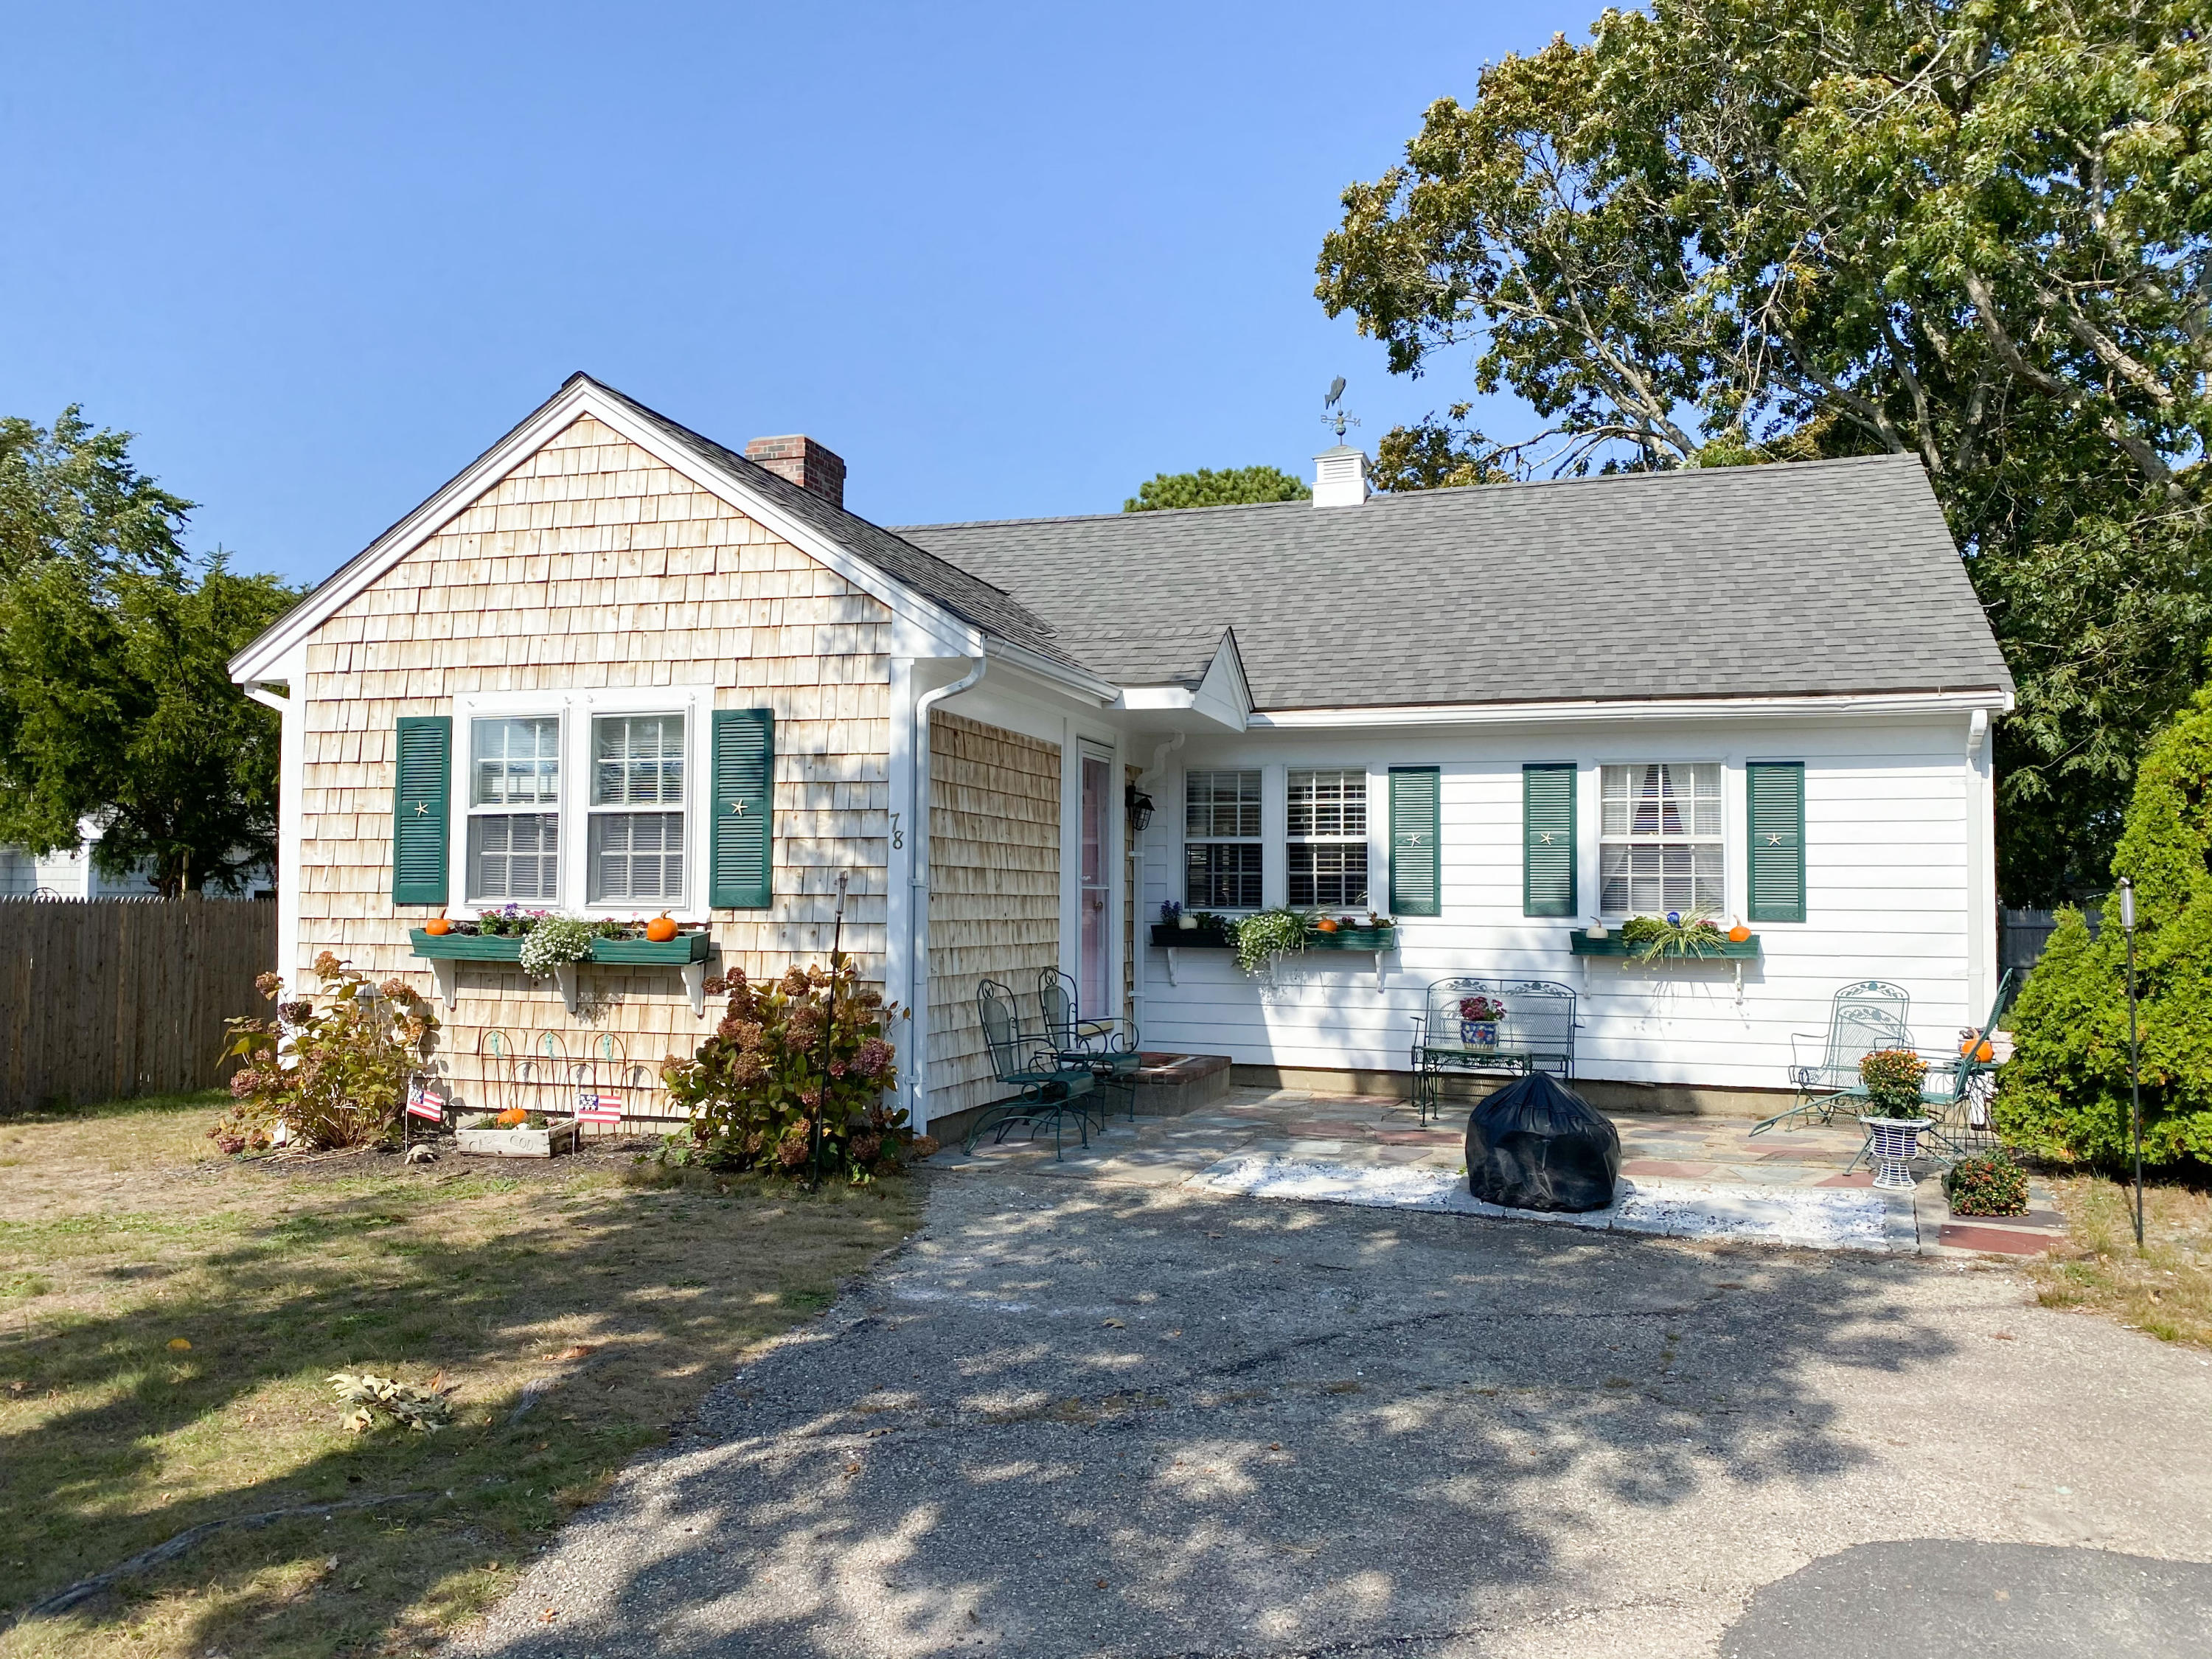 78 Lower County Road, Dennis Port MA, 02639 details